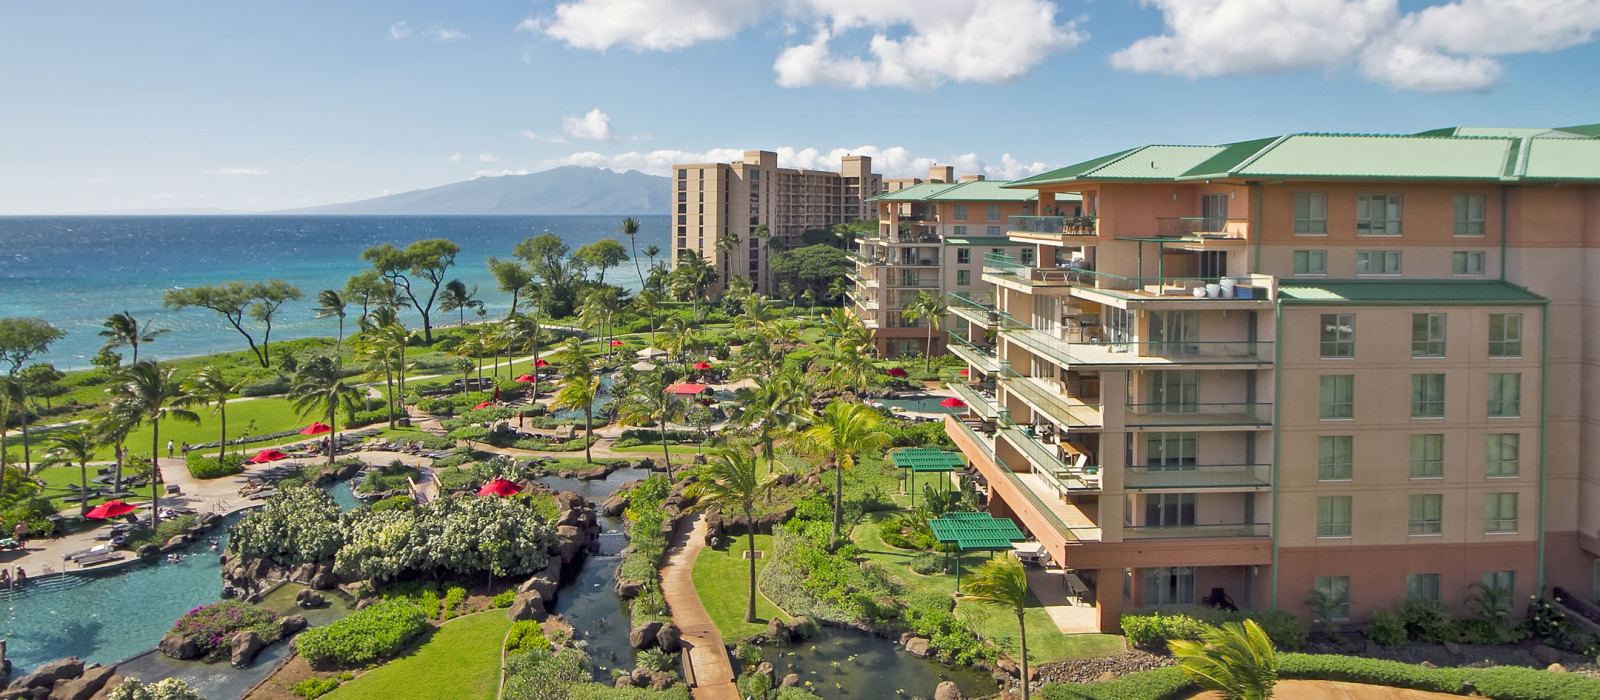 Hotel Honua Kai Resort & Spa Kaanapali Beach Hawaii